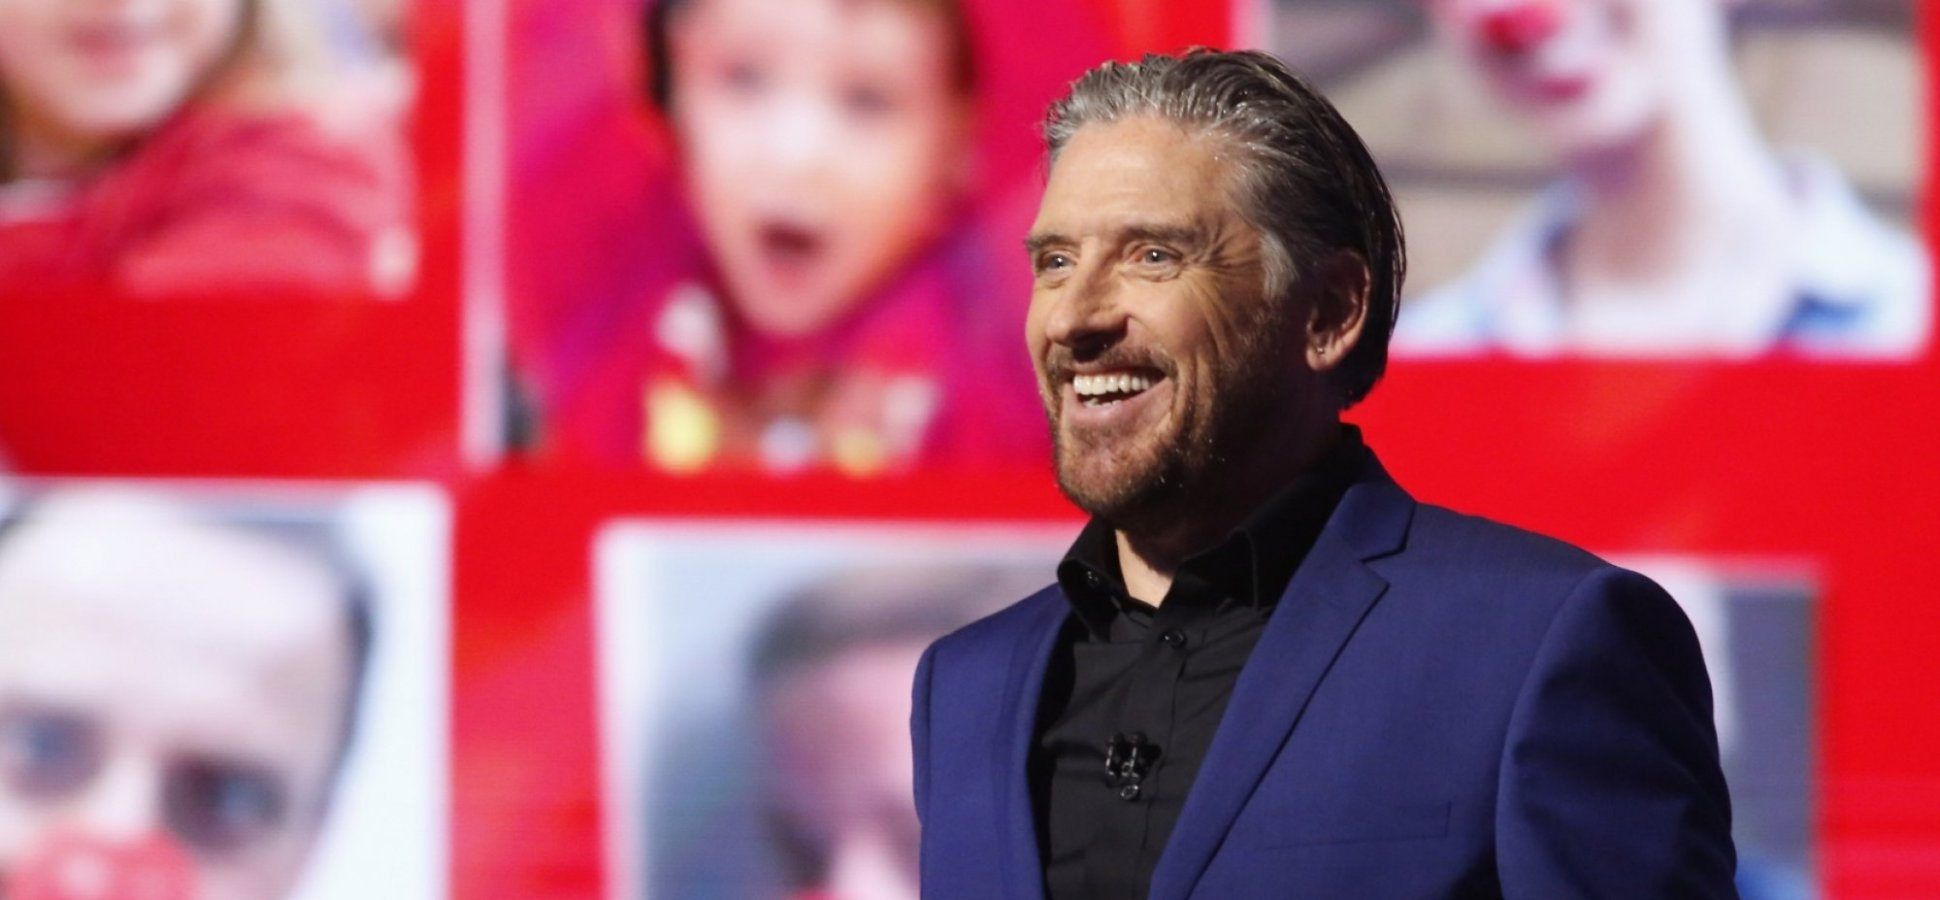 The 3-Second Trick From Craig Ferguson That Will Help You Manage Your Emotions